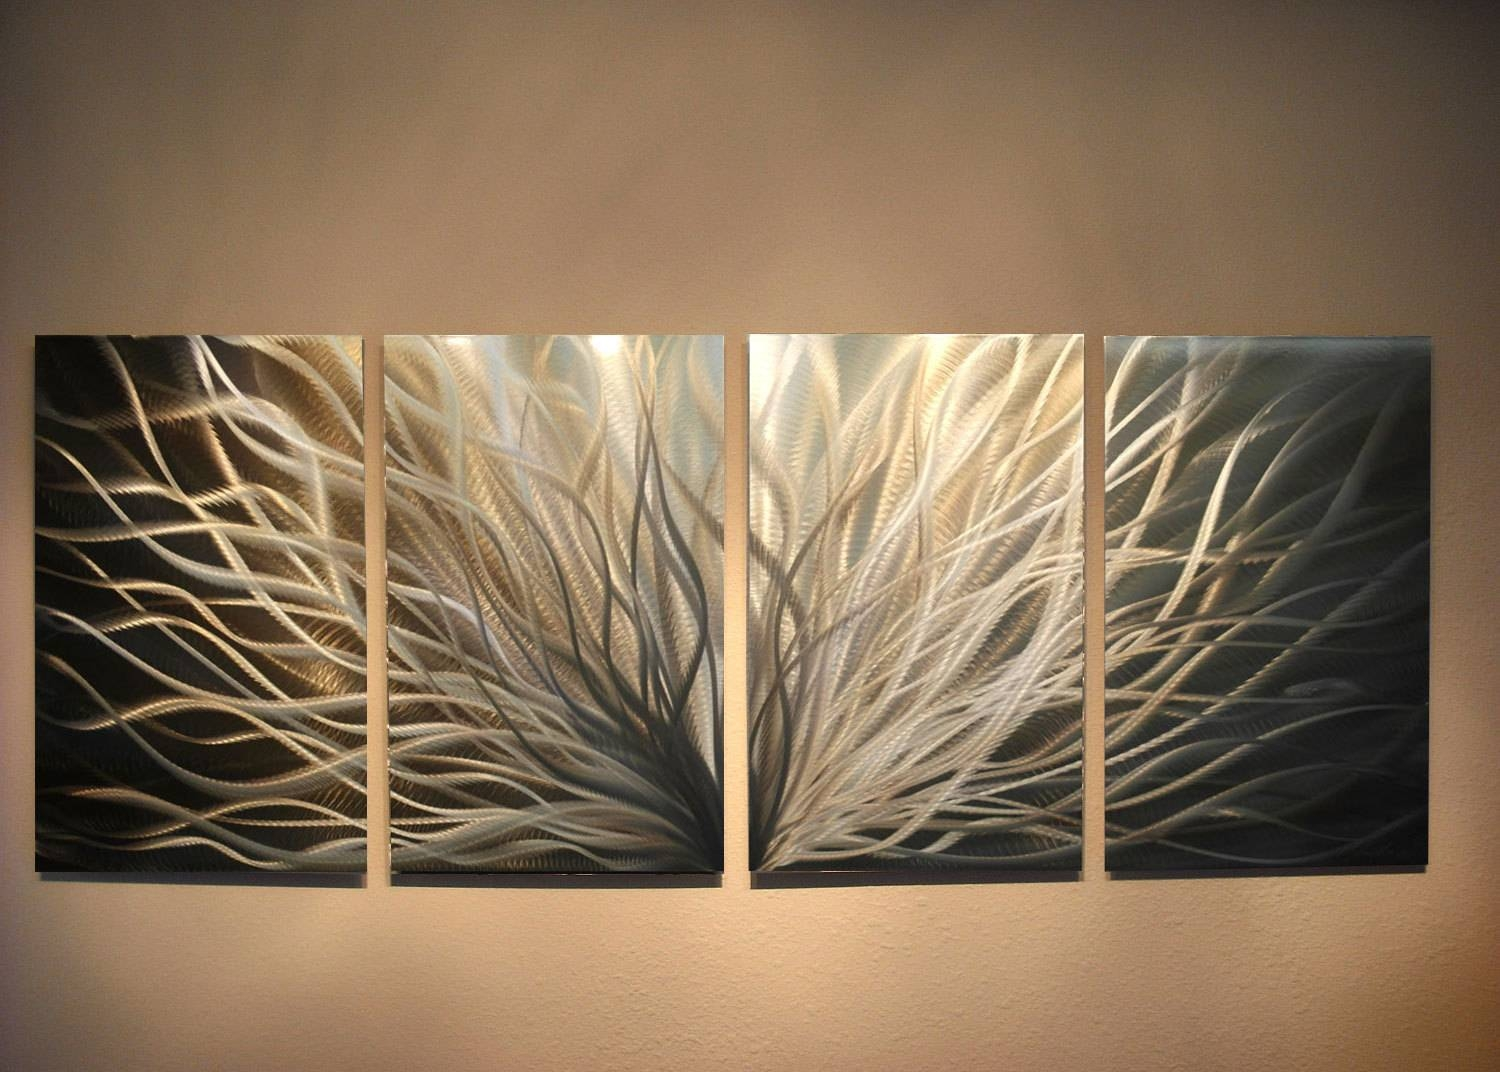 Metal Art Wall Art Decor Aluminum Abstract Contemporary Modern Throughout Most Up To Date Hanging Metal Wall Art (View 8 of 20)